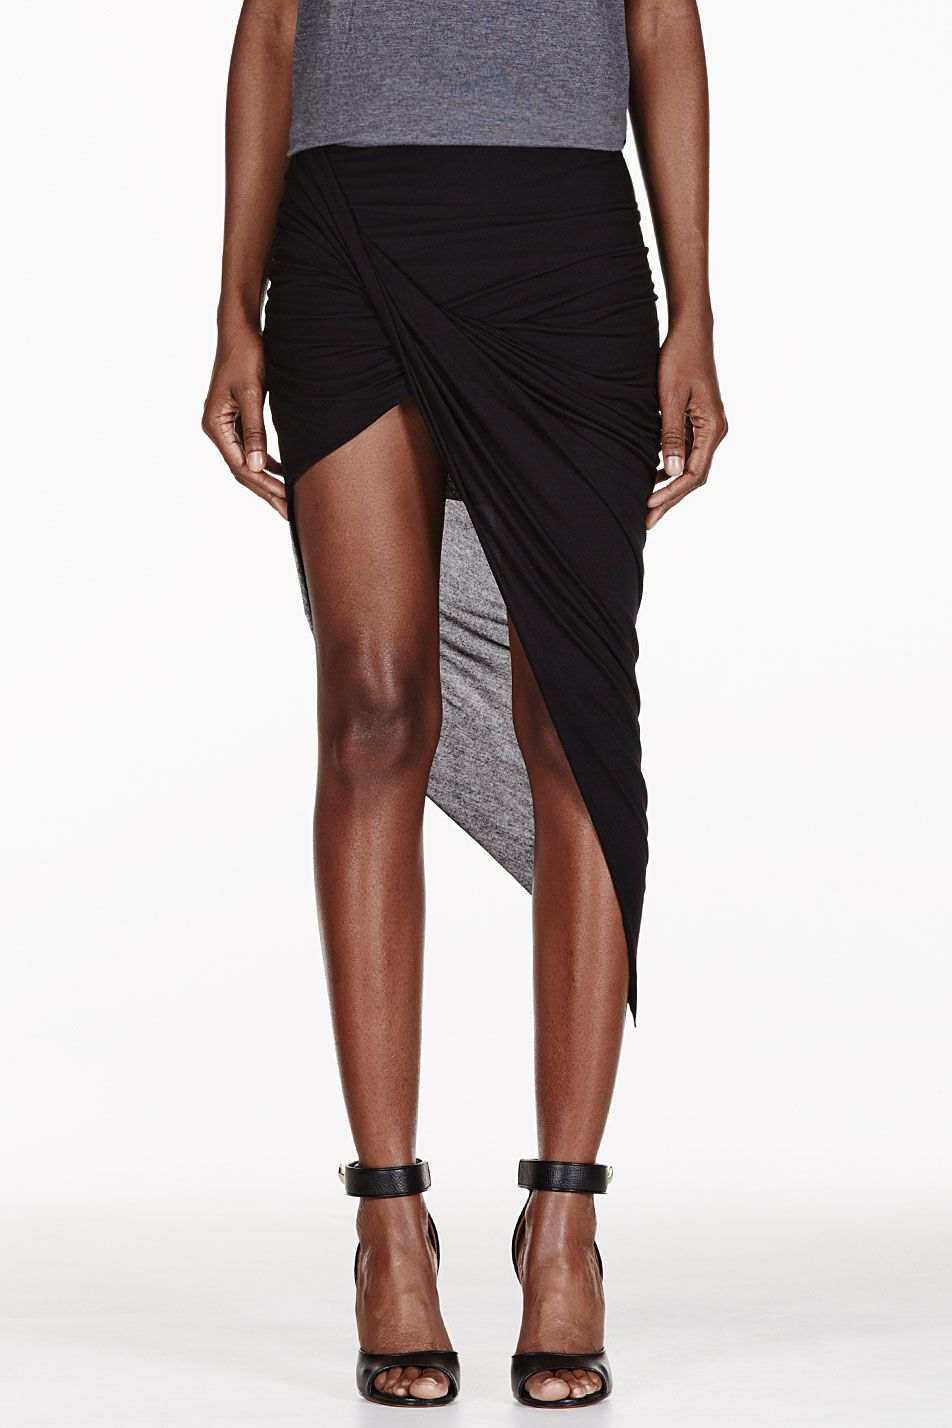 f3c80fe716 Helmut Helmut Lang Black Kinetic Asymmetrical Wrap Skirt | Skirts ...